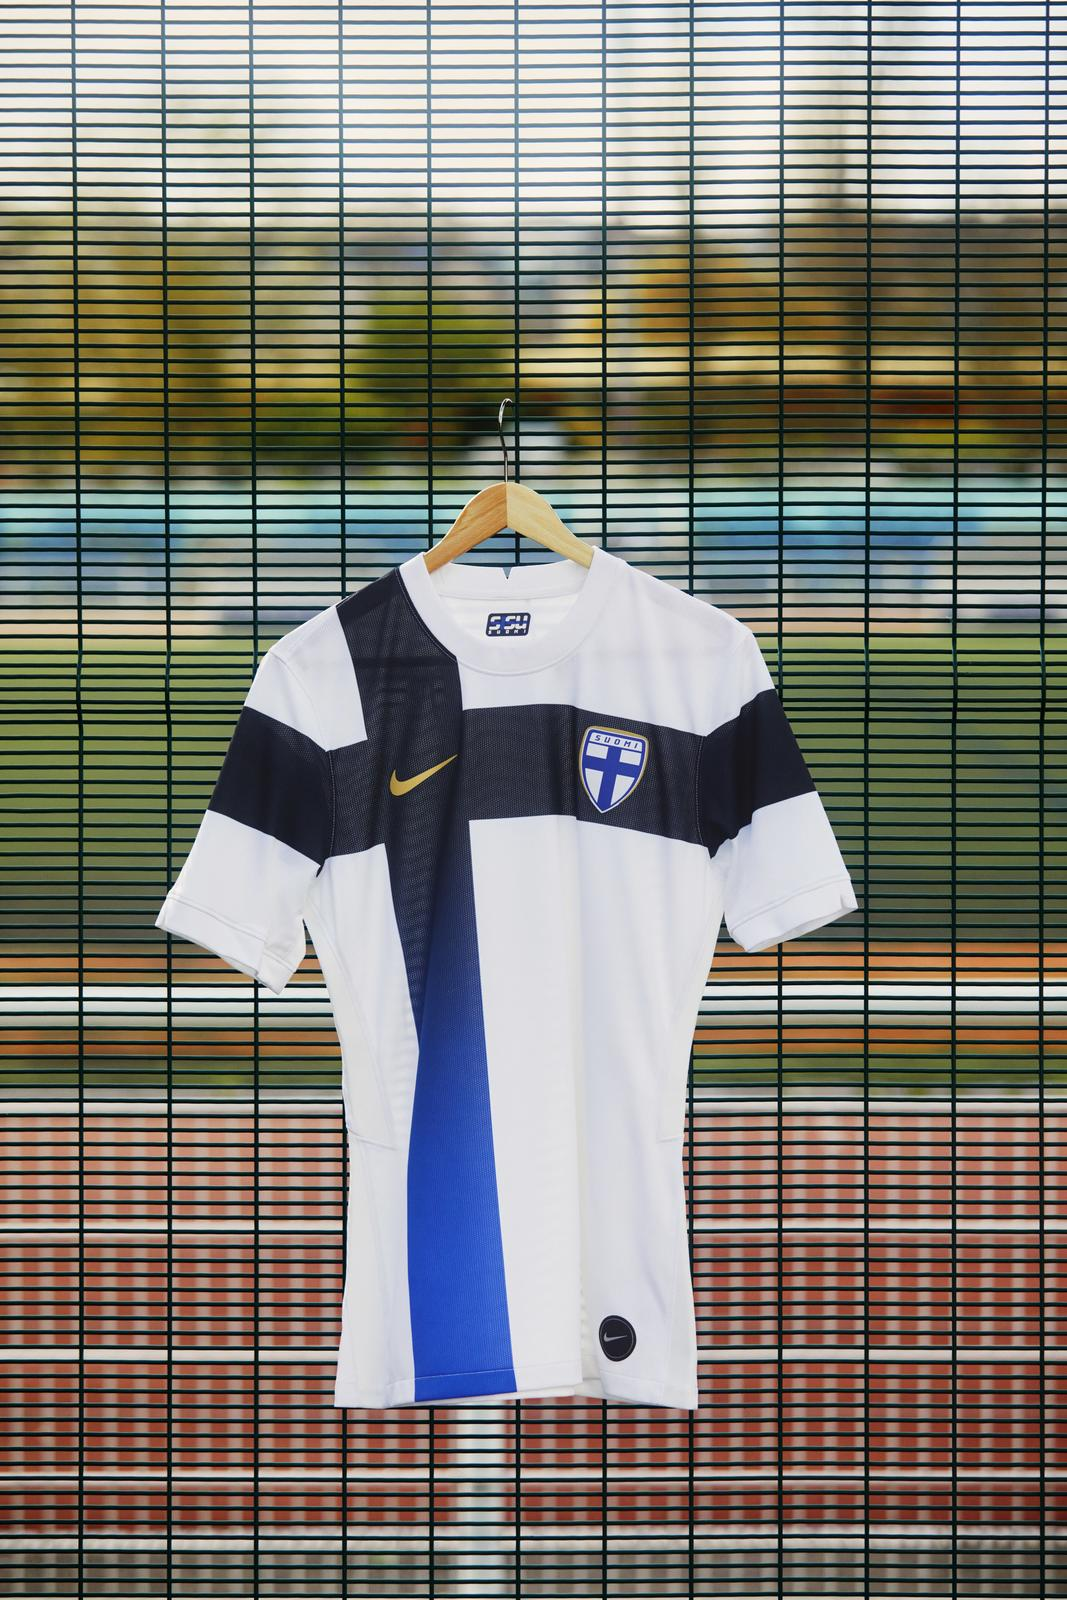 Nike 2020 Finland Home kit